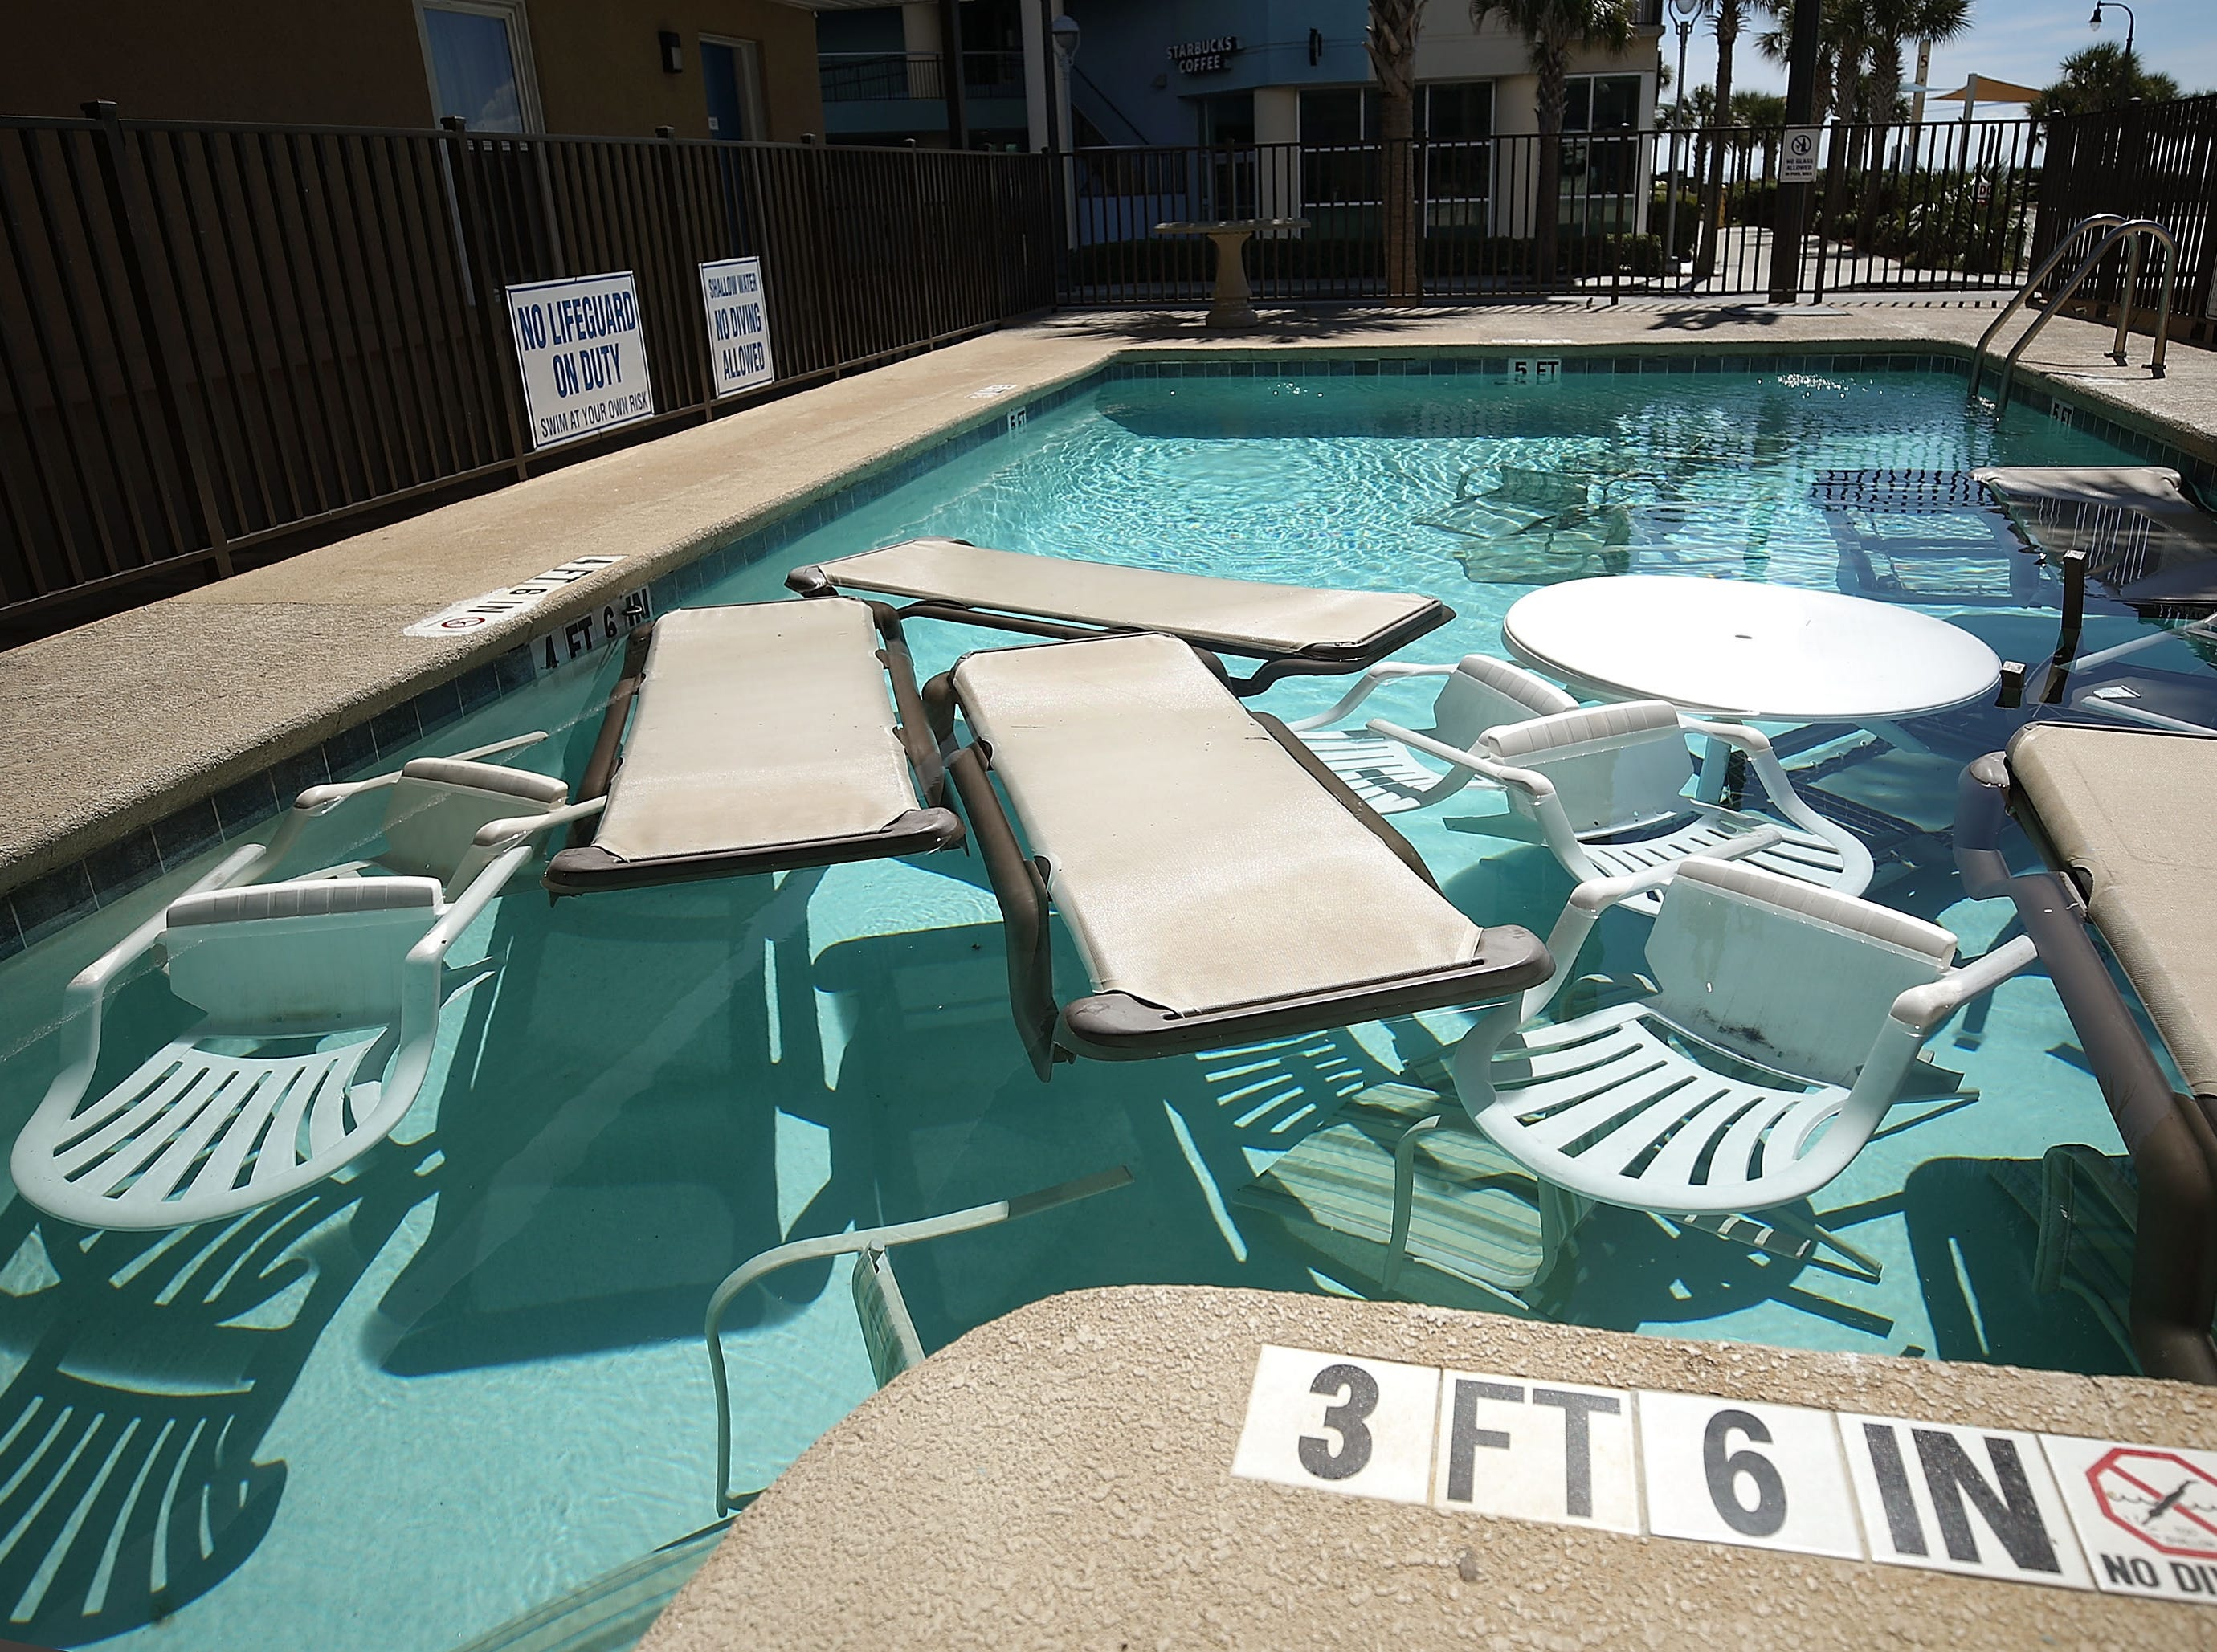 MRYTLE BEACH, SC. SEPTEMBER 12: Poolside furniture is placed in the pool of a hotel ahead of the approaching Hurricane Florence on September 12, 2018 in Mrytle Beach, South Carolina. Hurricane Florence is expected on Friday possibly as a category 4 storm along the Virginia, North Carolina and South Carolina coastline.